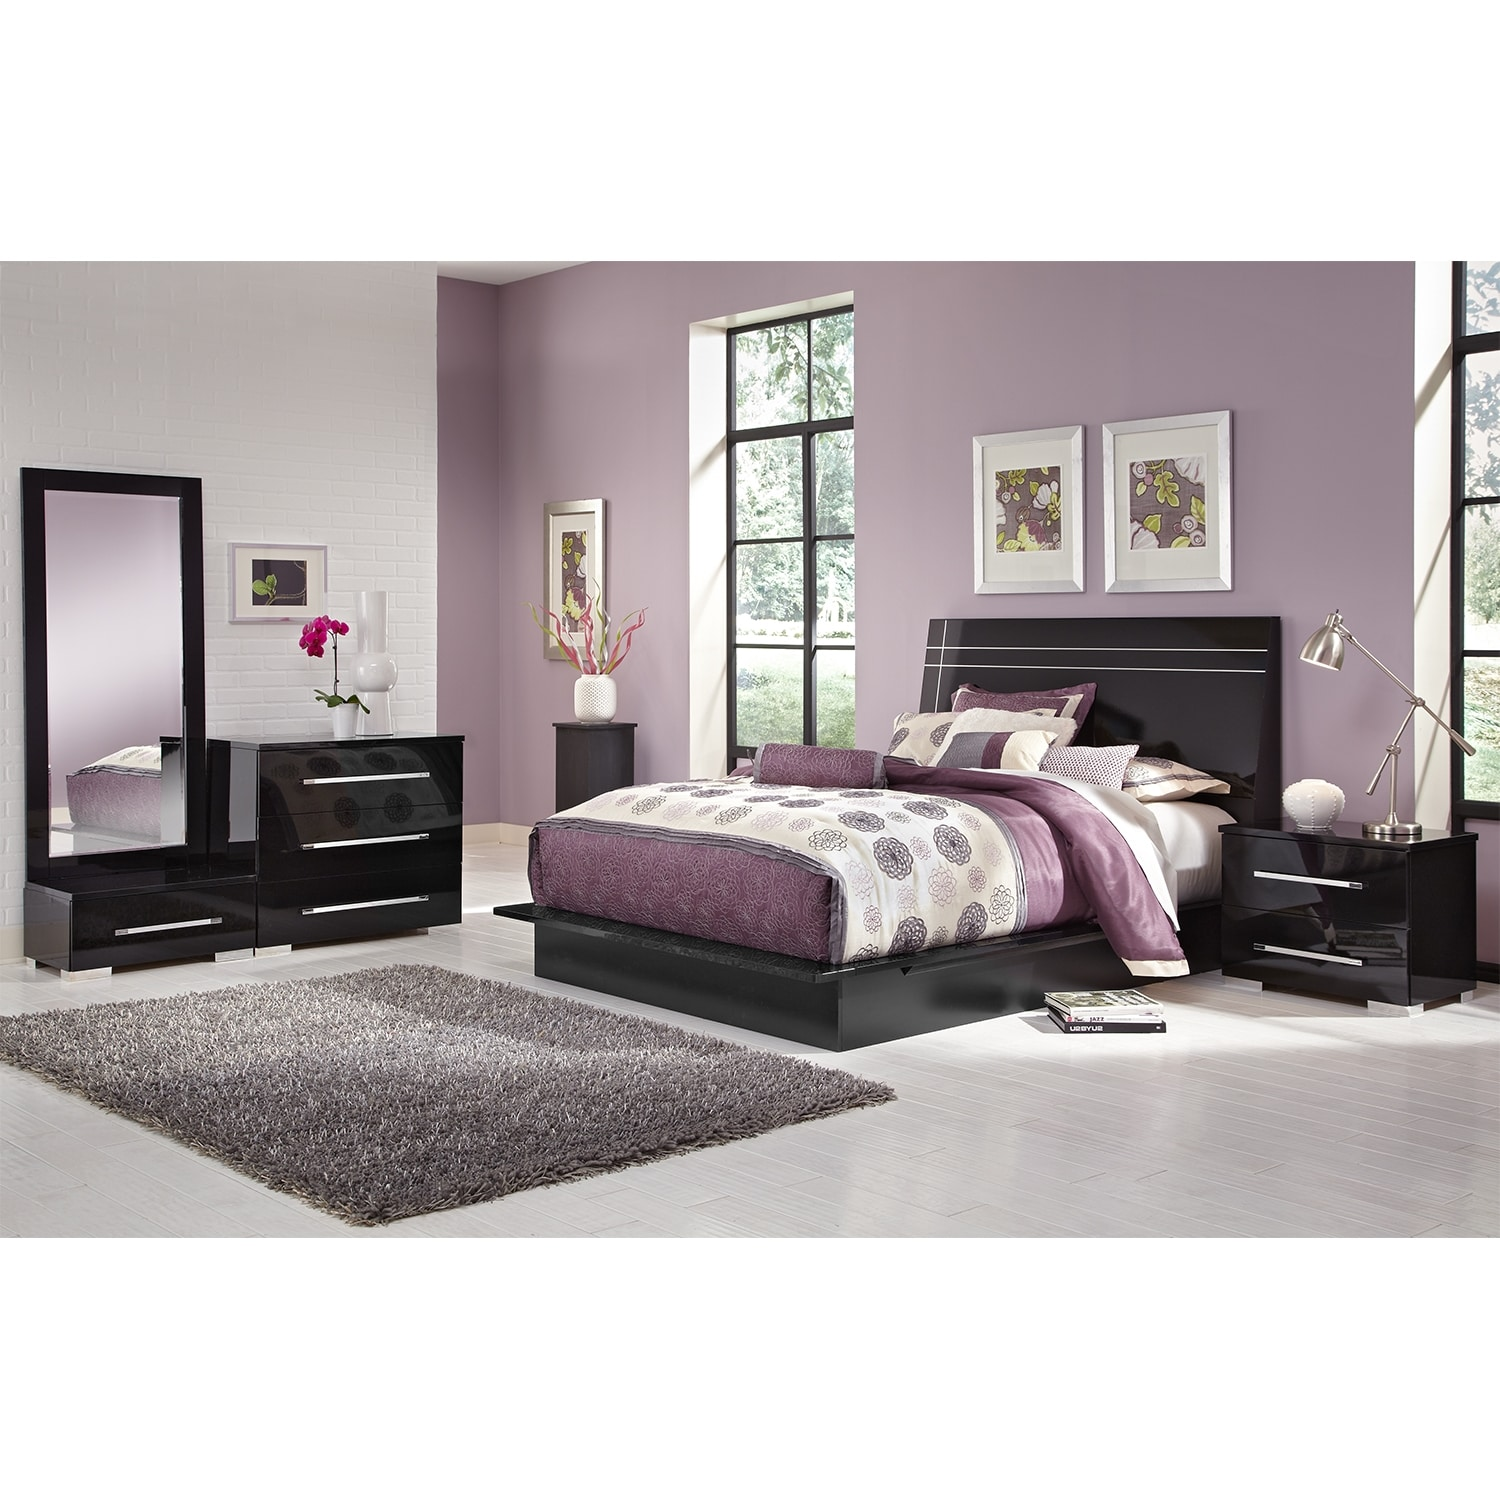 city furniture bedroom set dimora 6 king panel bedroom set black value city 14825